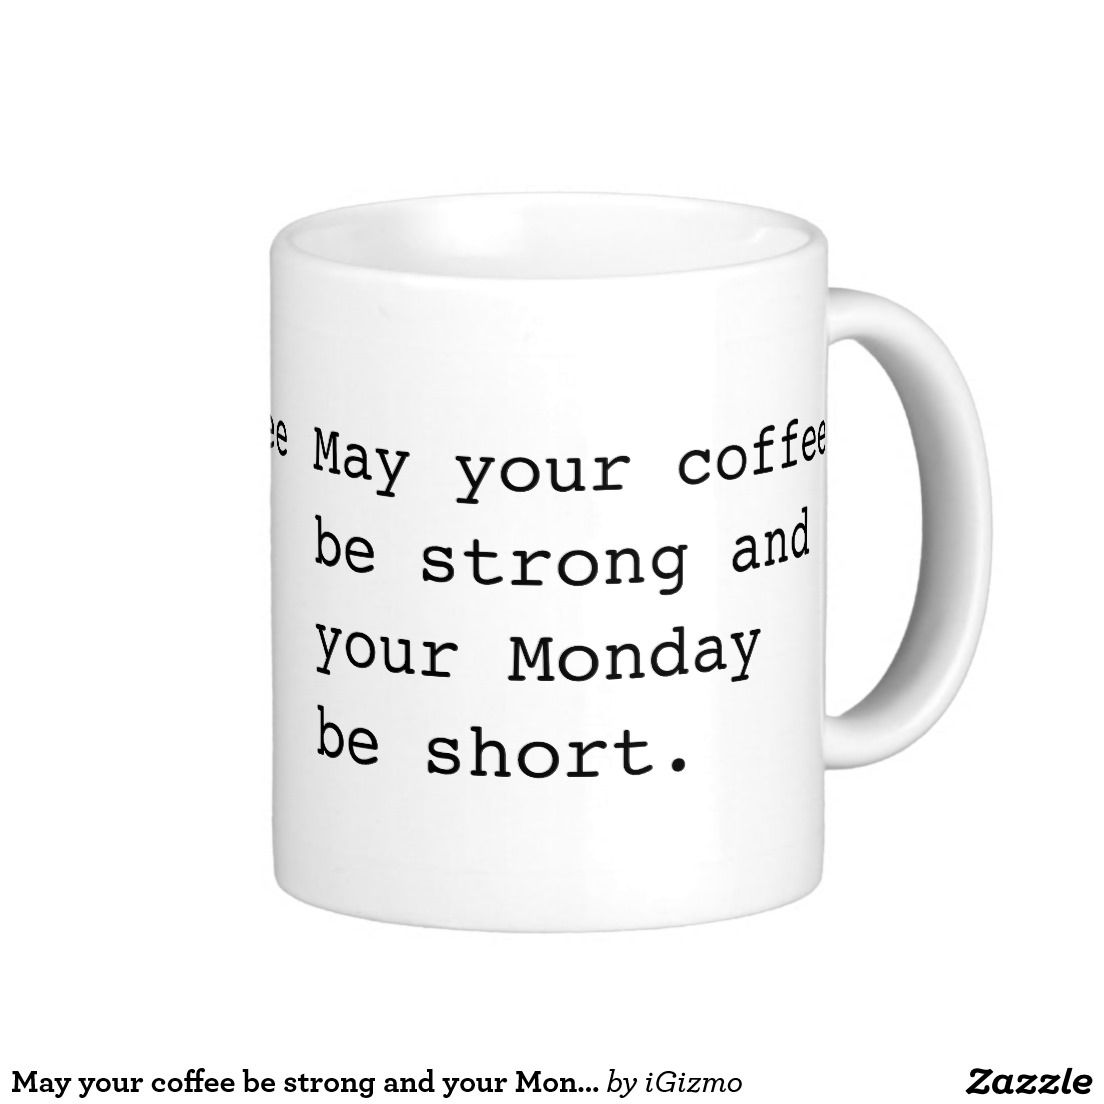 Funny May your coffee be strong and your Monday be short hipster office humor white elephant or humorous gag gift coffee cup mug.